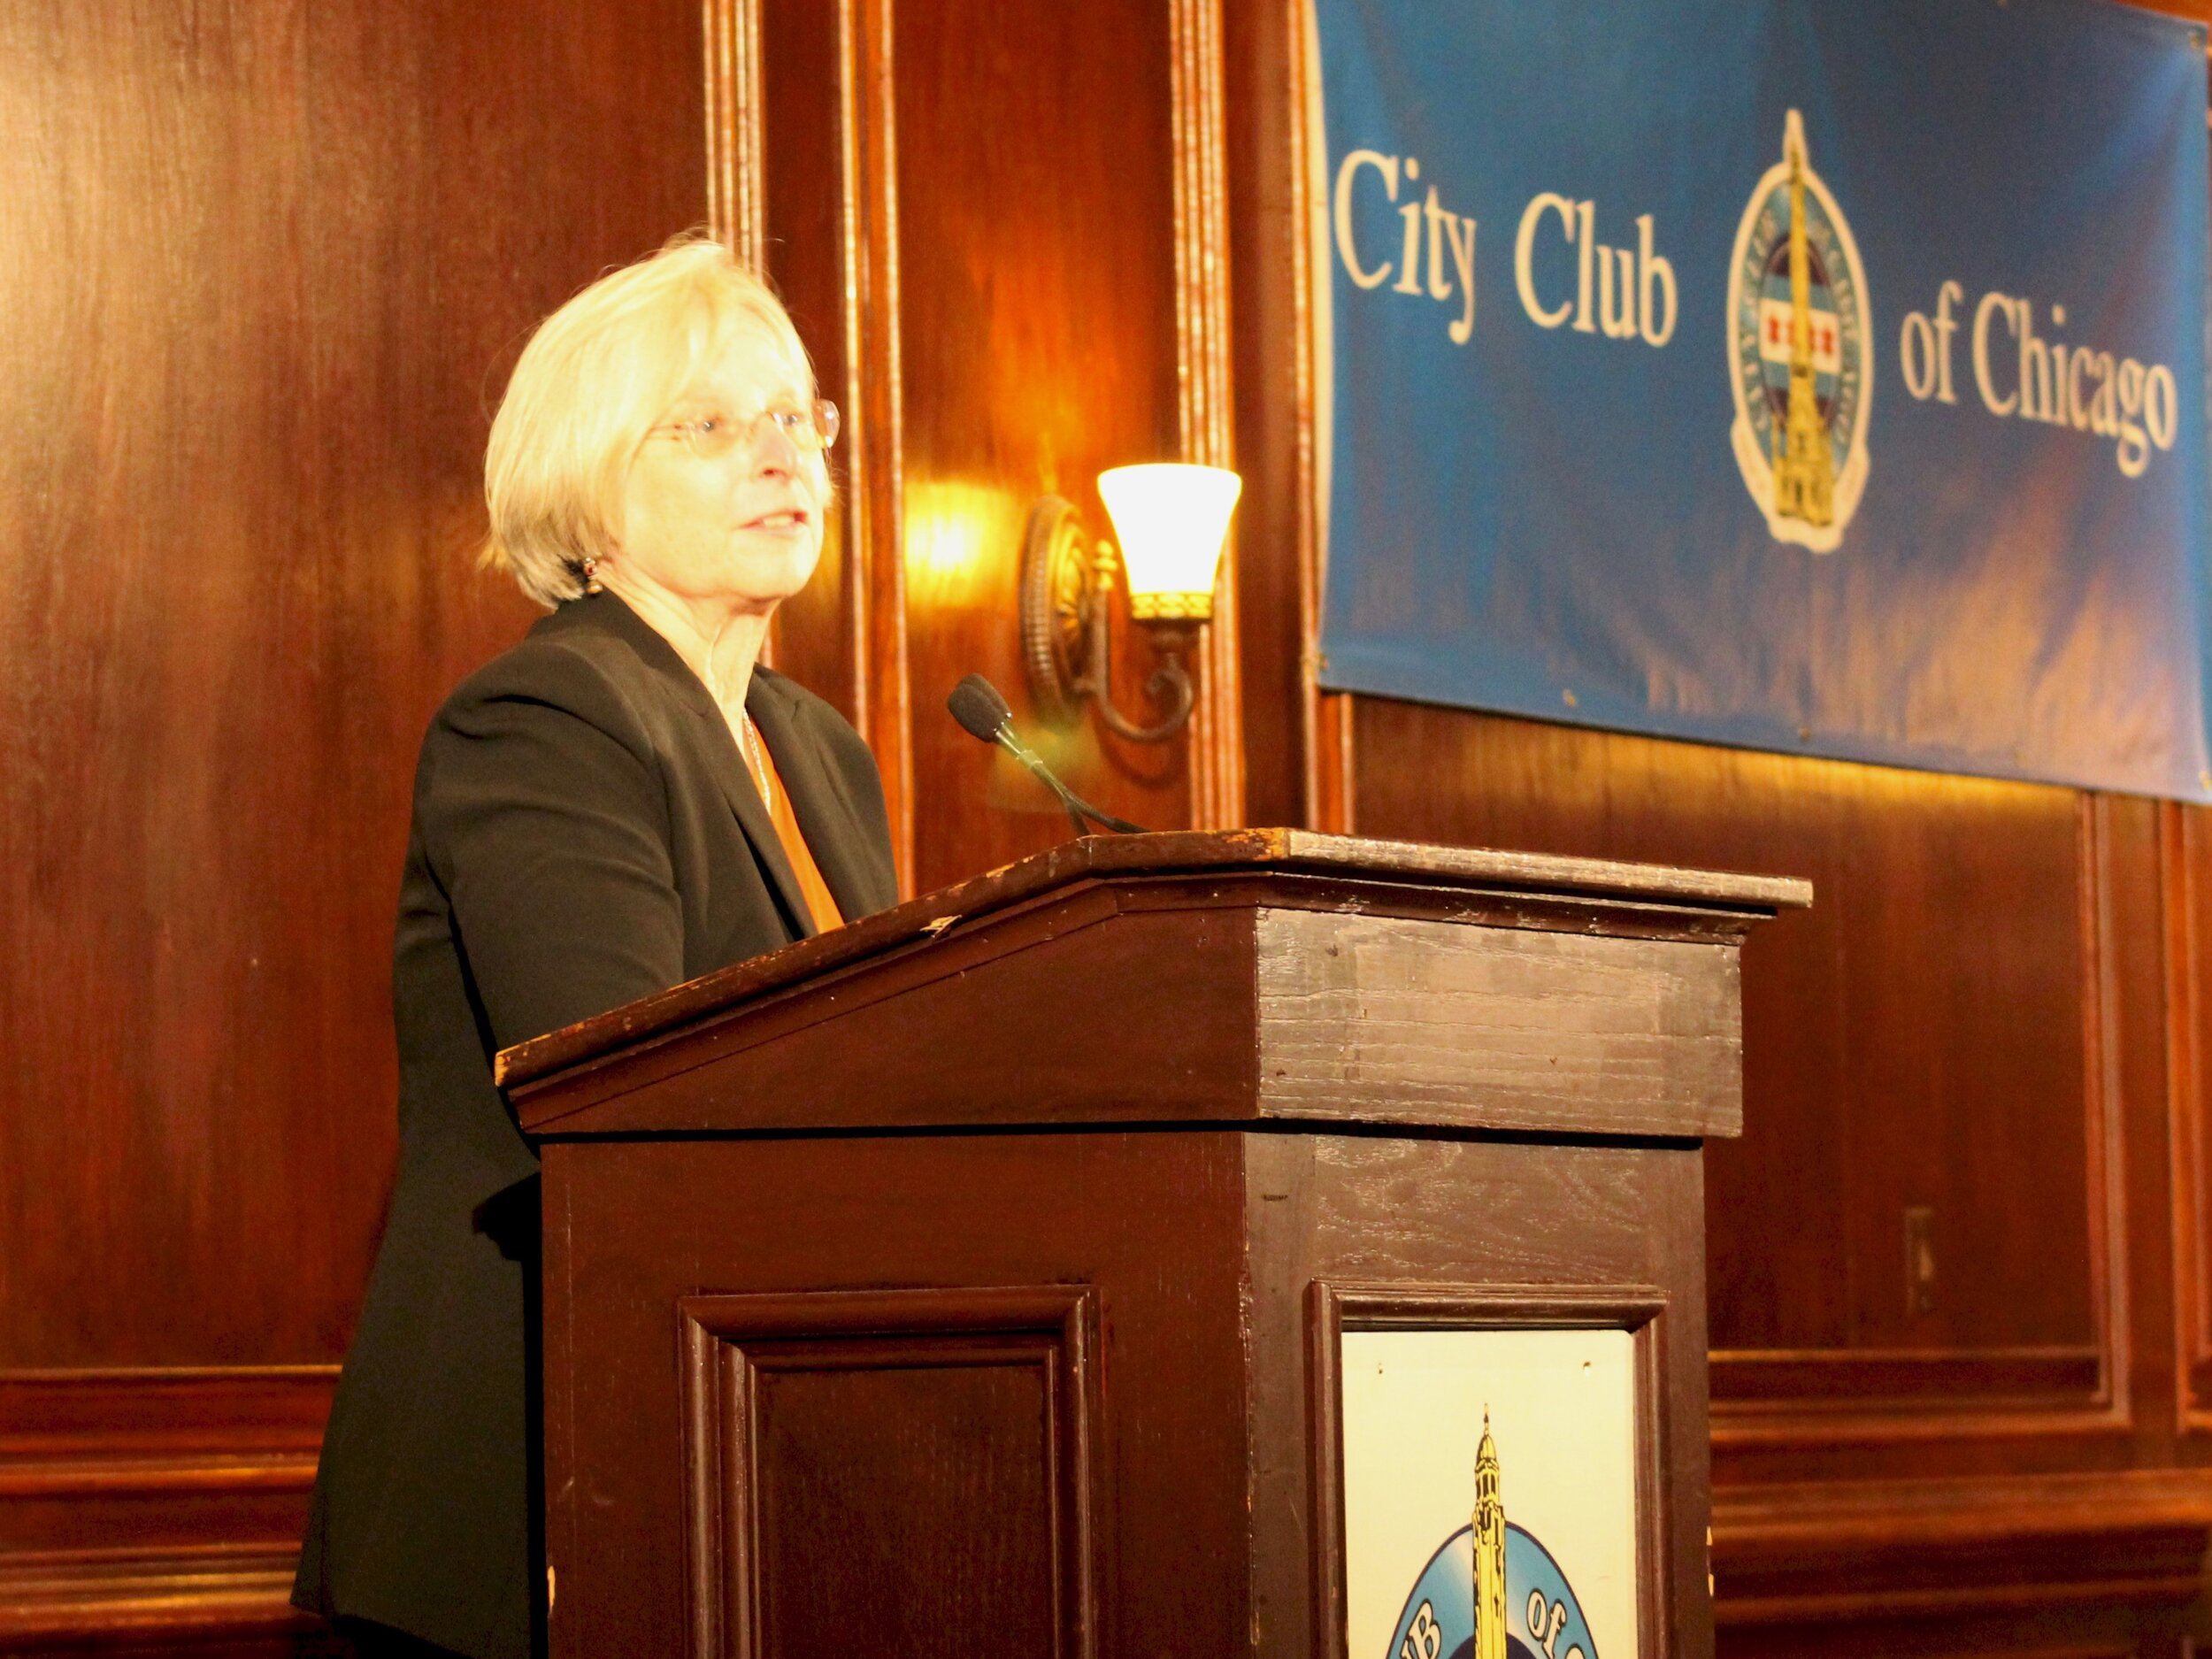 Colleen Connell, head of the ACLU of Illinois, speaks at the City Club of Chicago Tuesday. (One Illinois/Ted Cox)